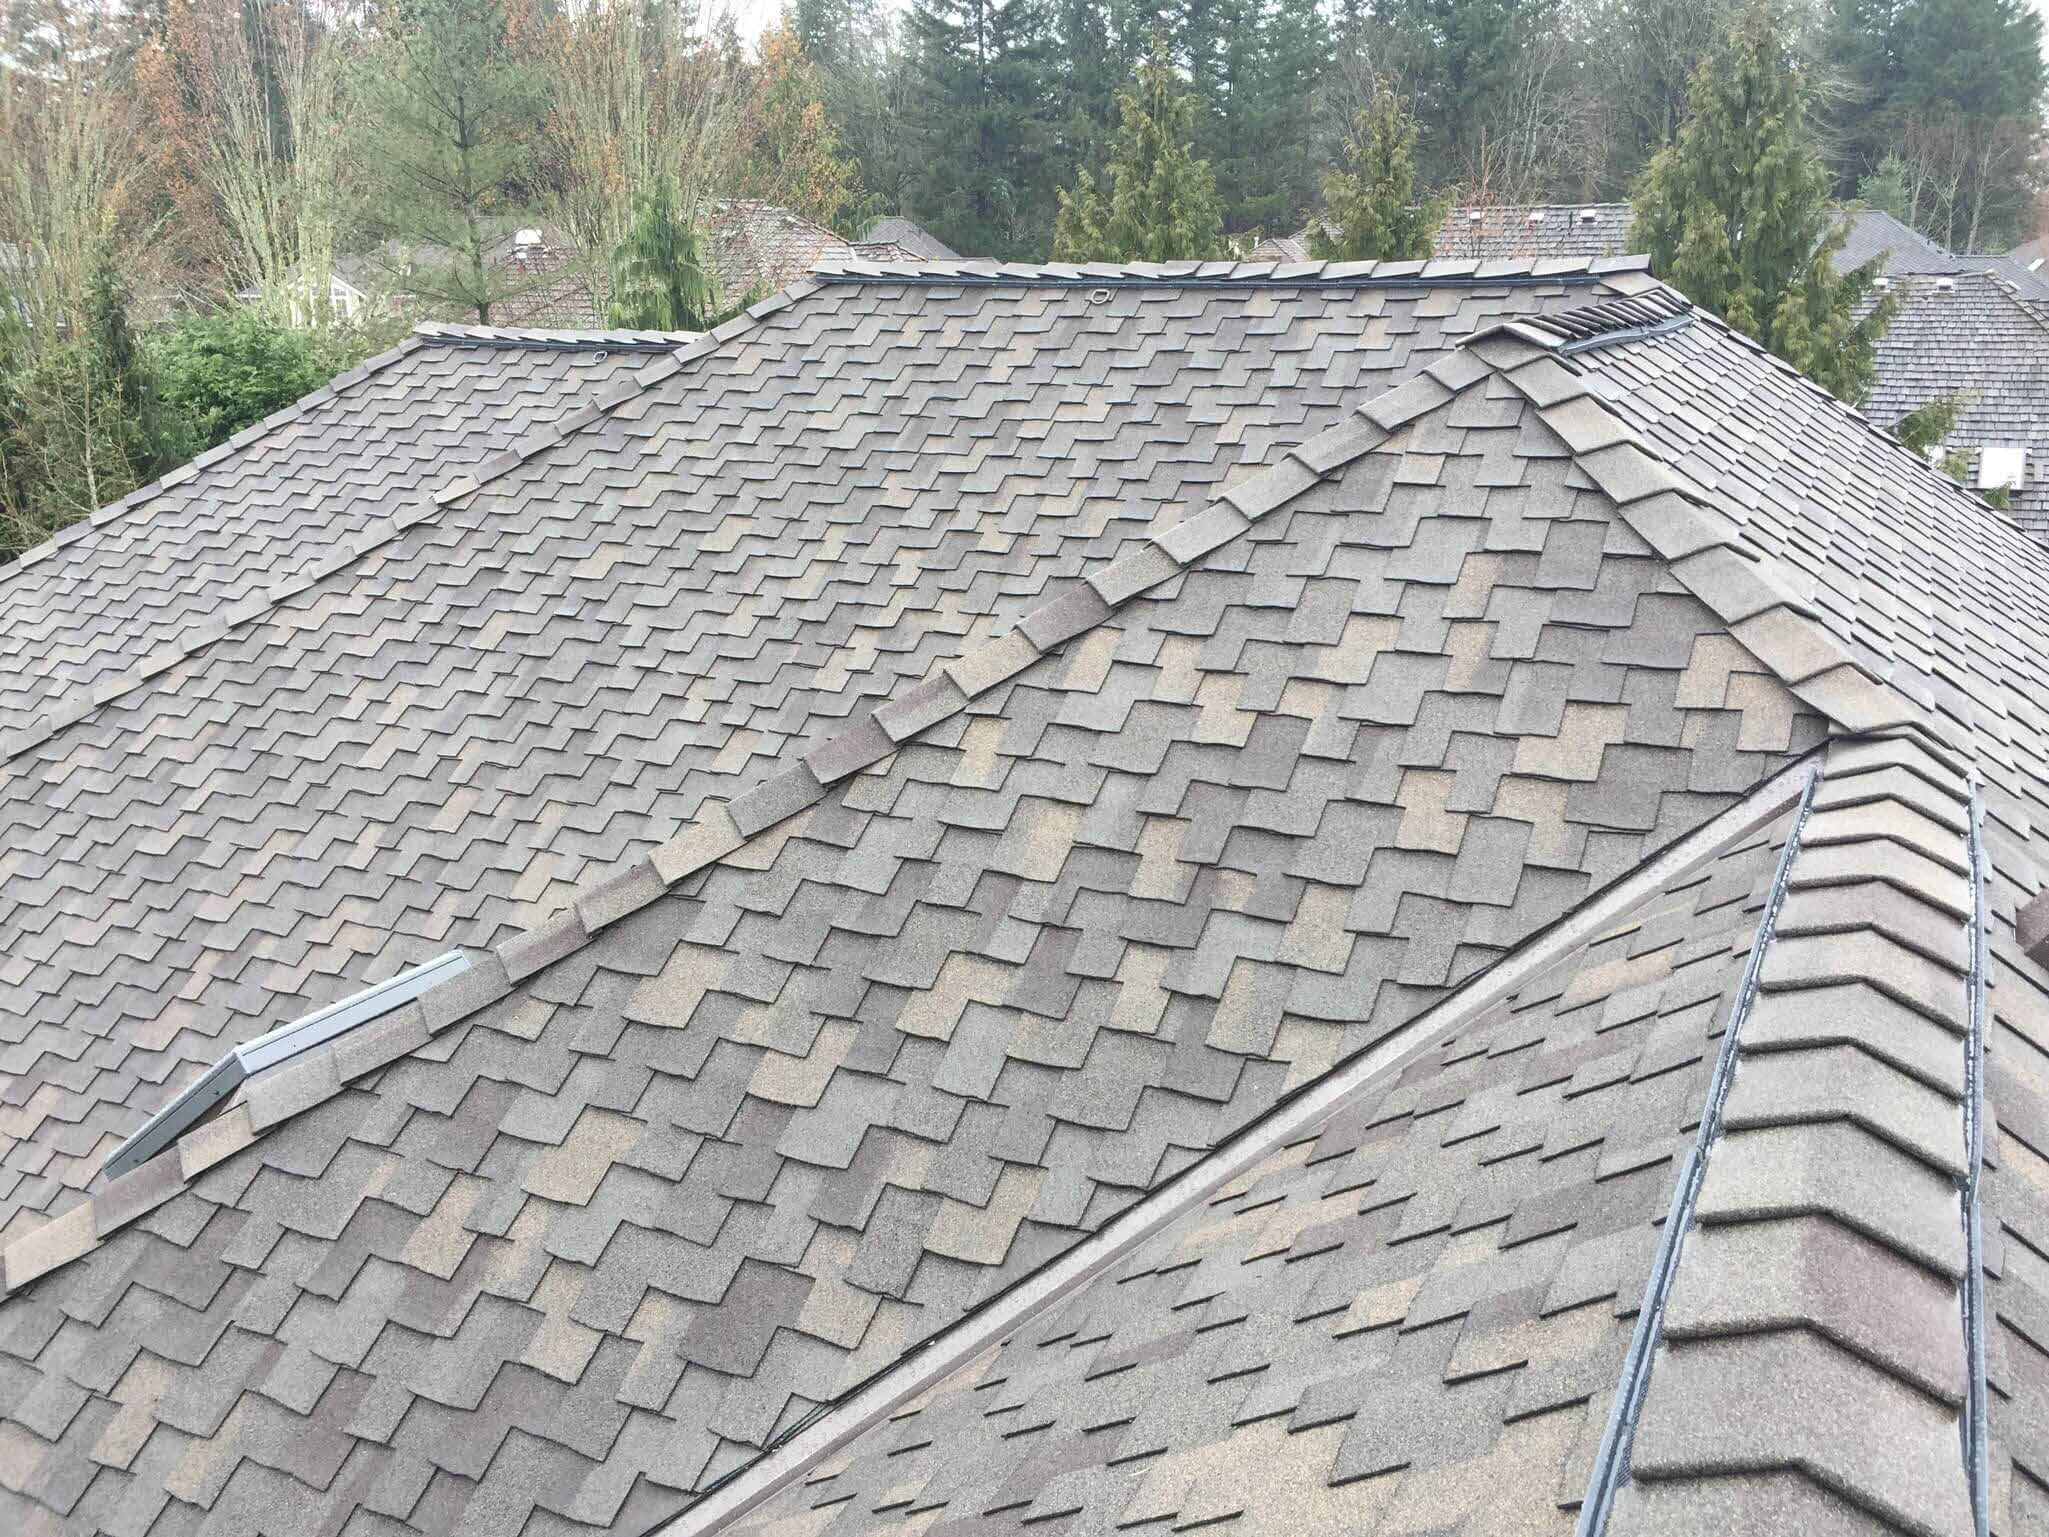 Composition roof - composite roof - Sherpa Roofing & Construction - roof repair - roof installation - roof maintenance - Woodinville, WA